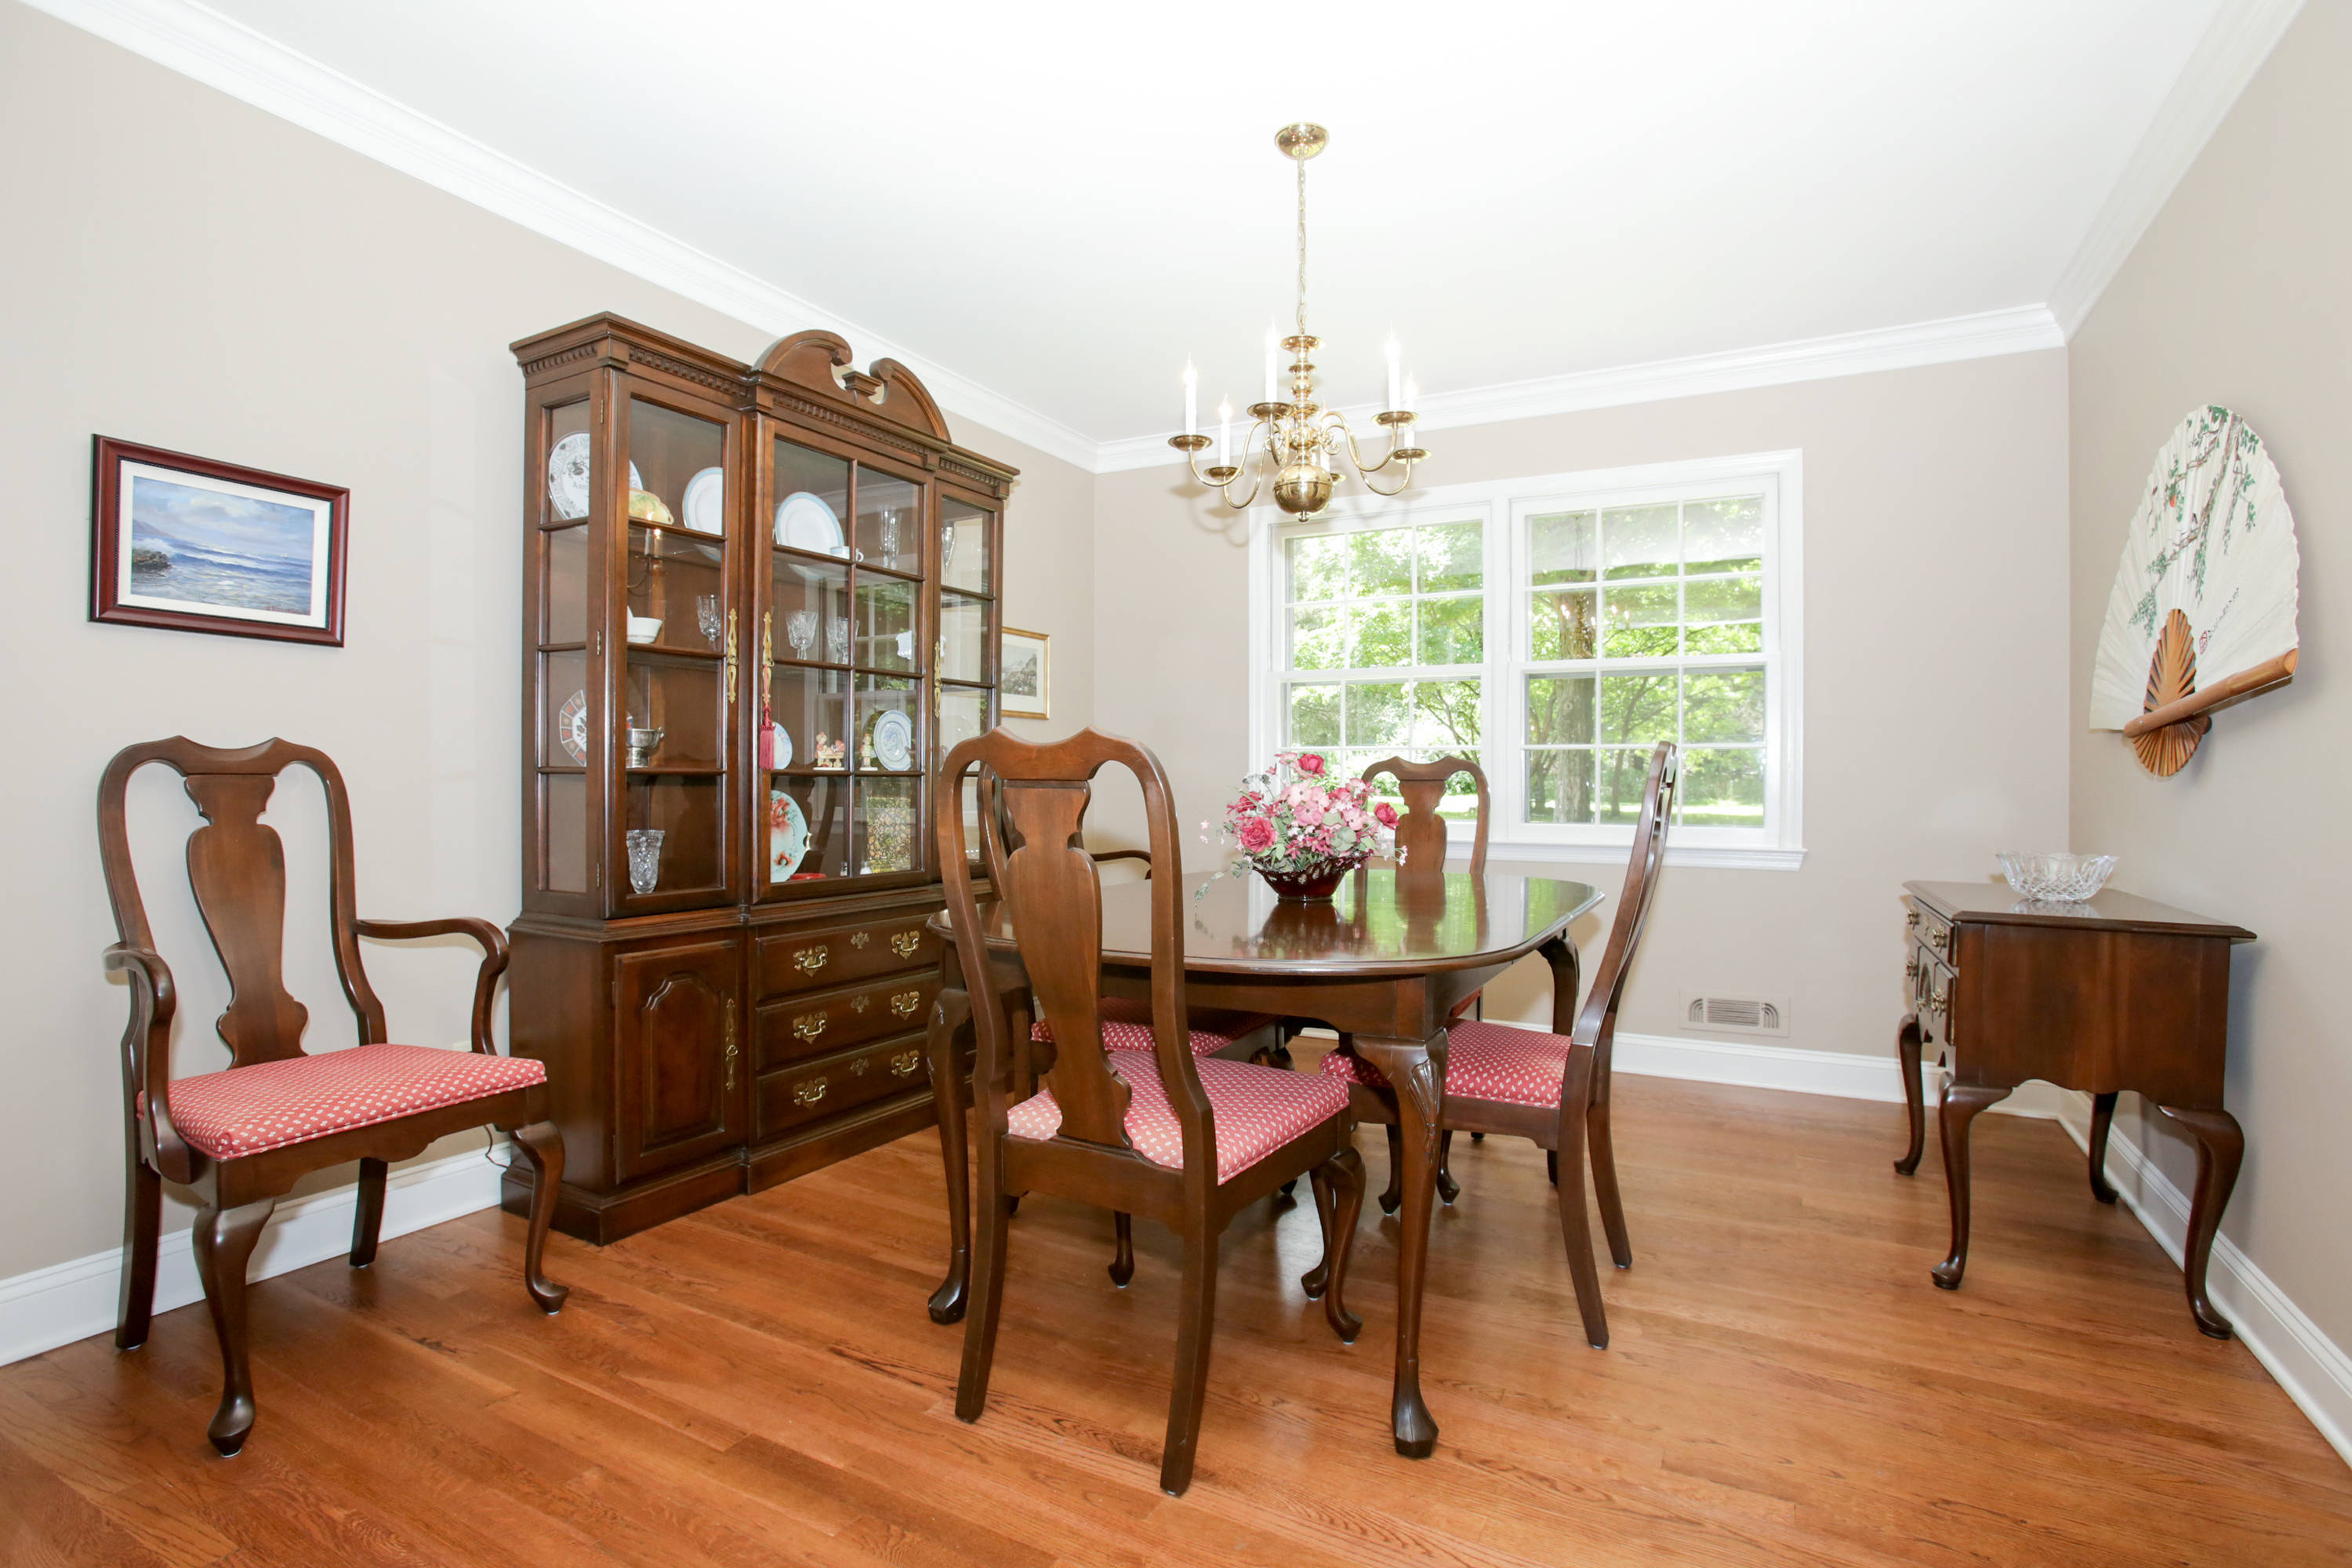 Tapinto for Alternative ideas for formal dining room